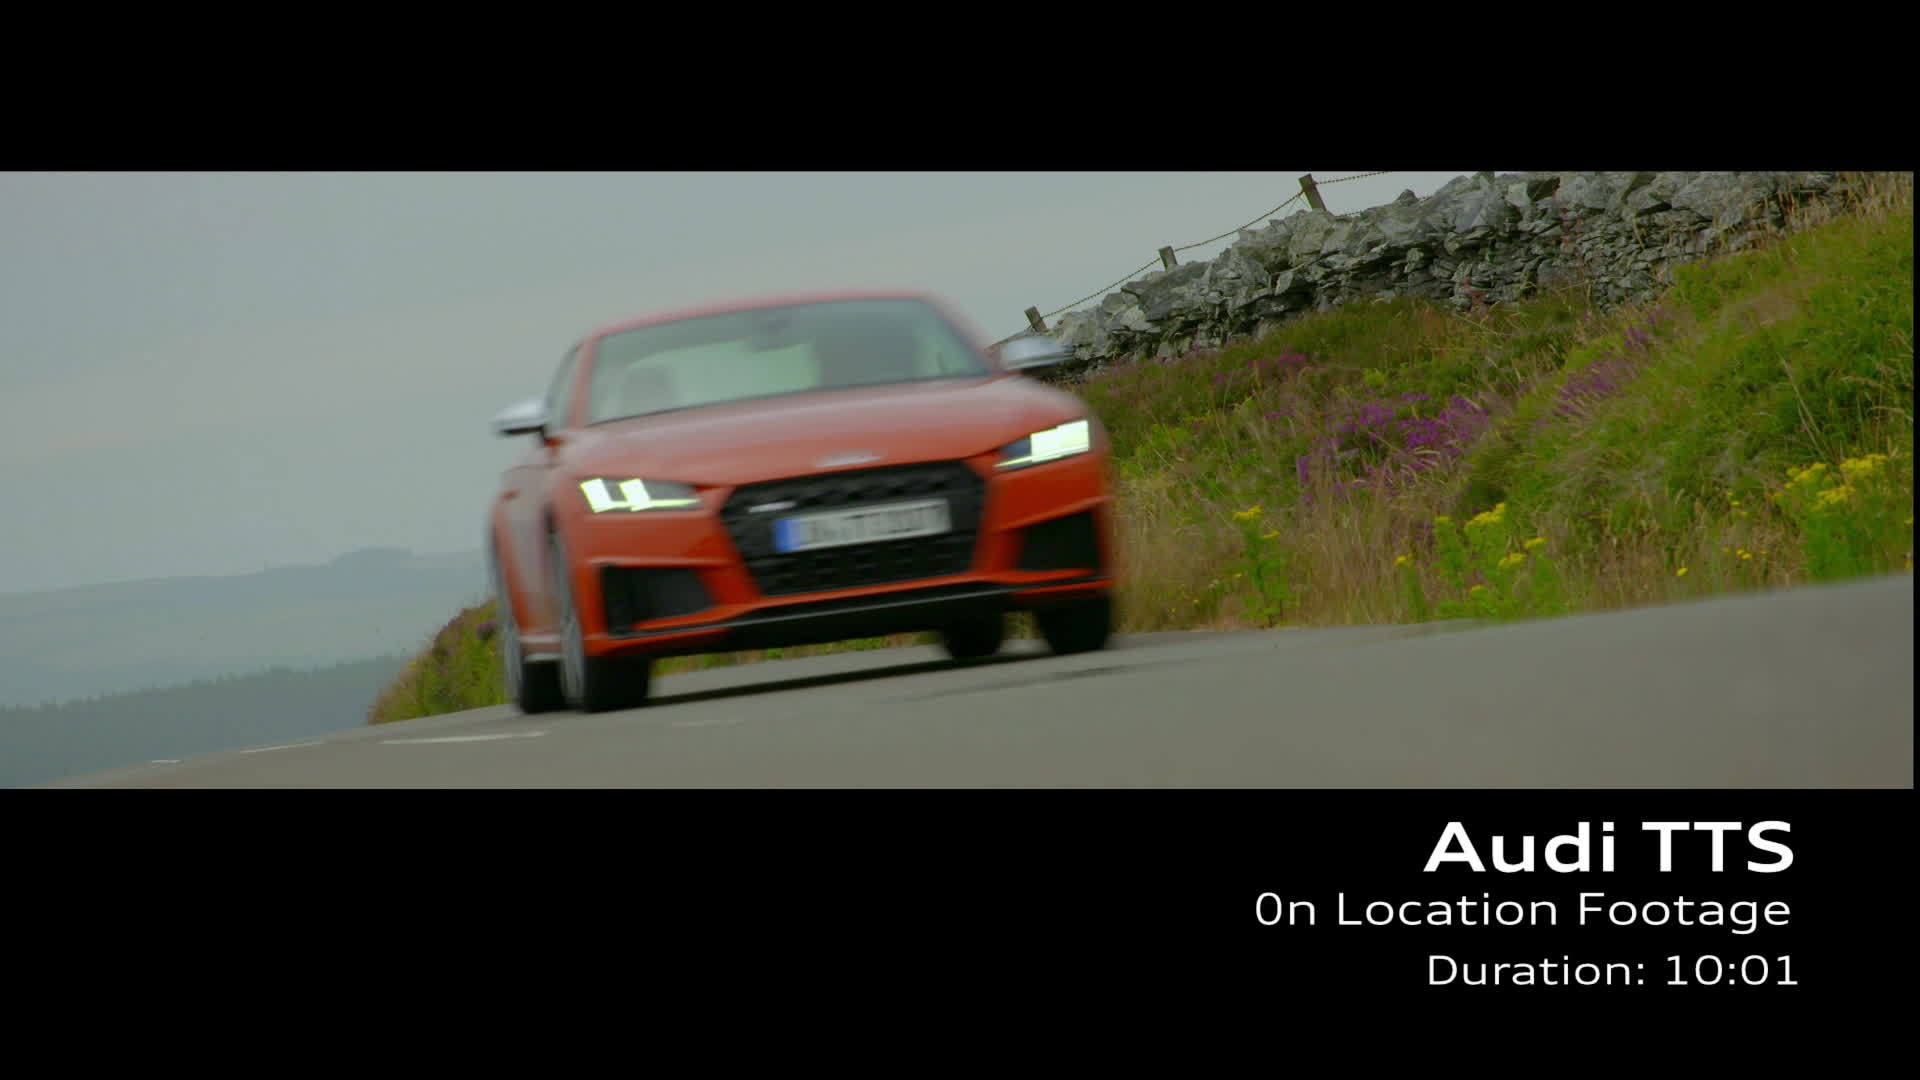 Audi TTS Footage Pulse orange